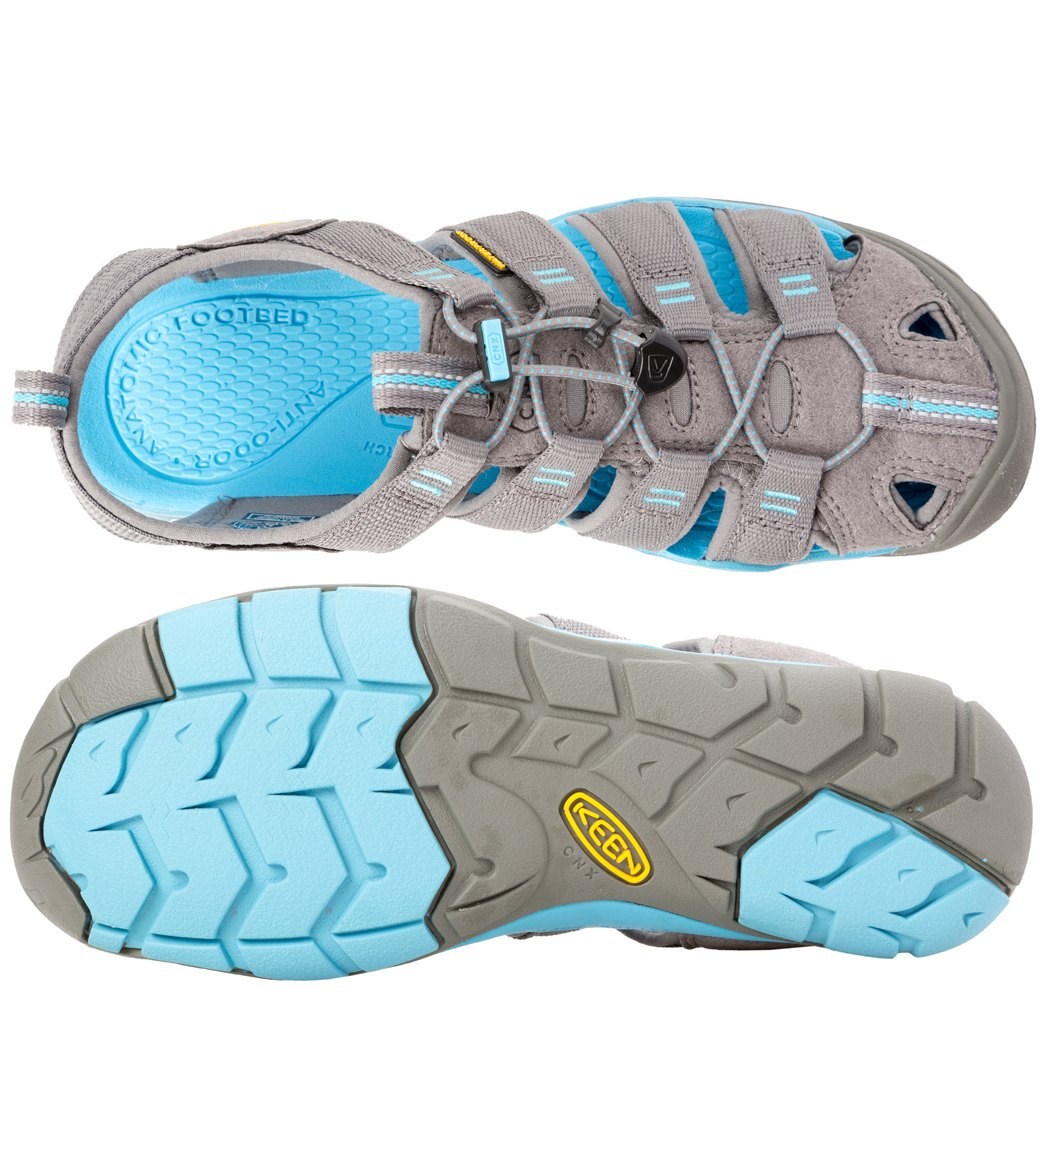 23041f54f489 Keen Women s Clearwater CNX Water Shoes at SwimOutlet.com - Free ...